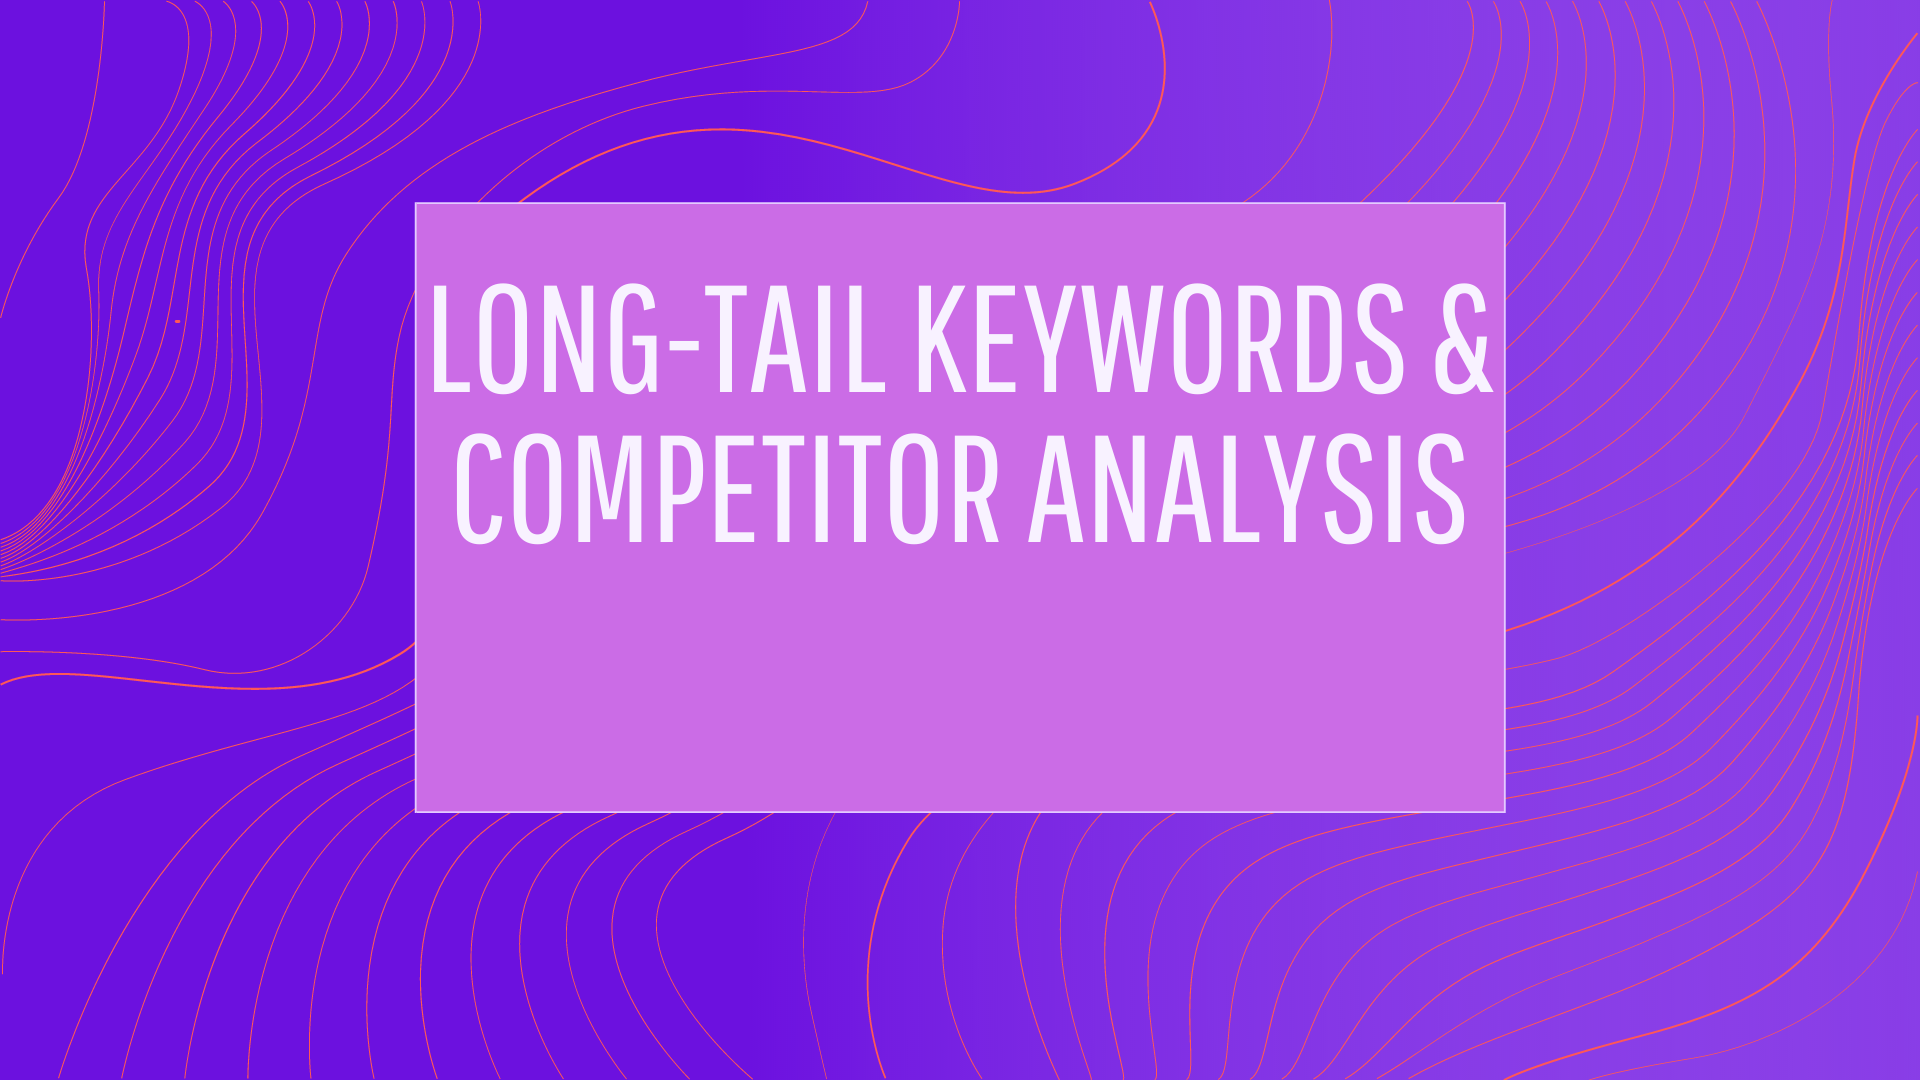 I will do Long-tail keyword research and Competitor Analysis